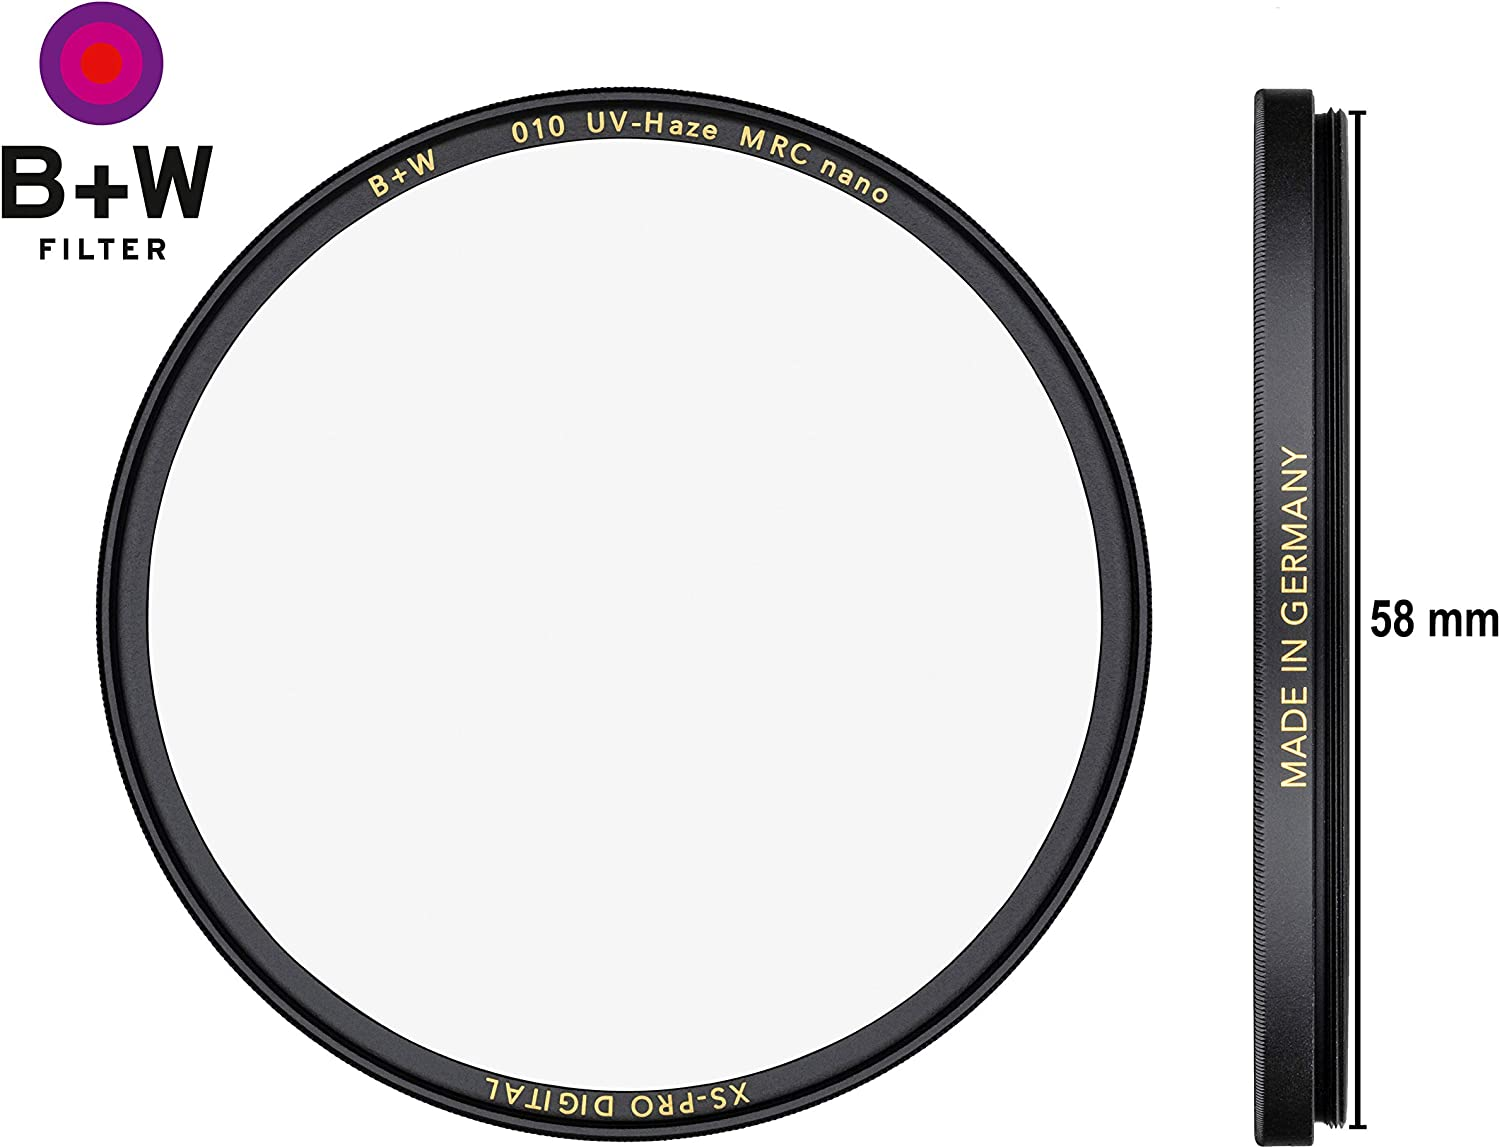 Photography Filter MRC Nano 010 16 Layers Multi-Resistant and Nano Coating XS-PRO Xtra Slim Mount W 58mm UV Protection Filter Clear Protector B 58 mm for Camera Lens